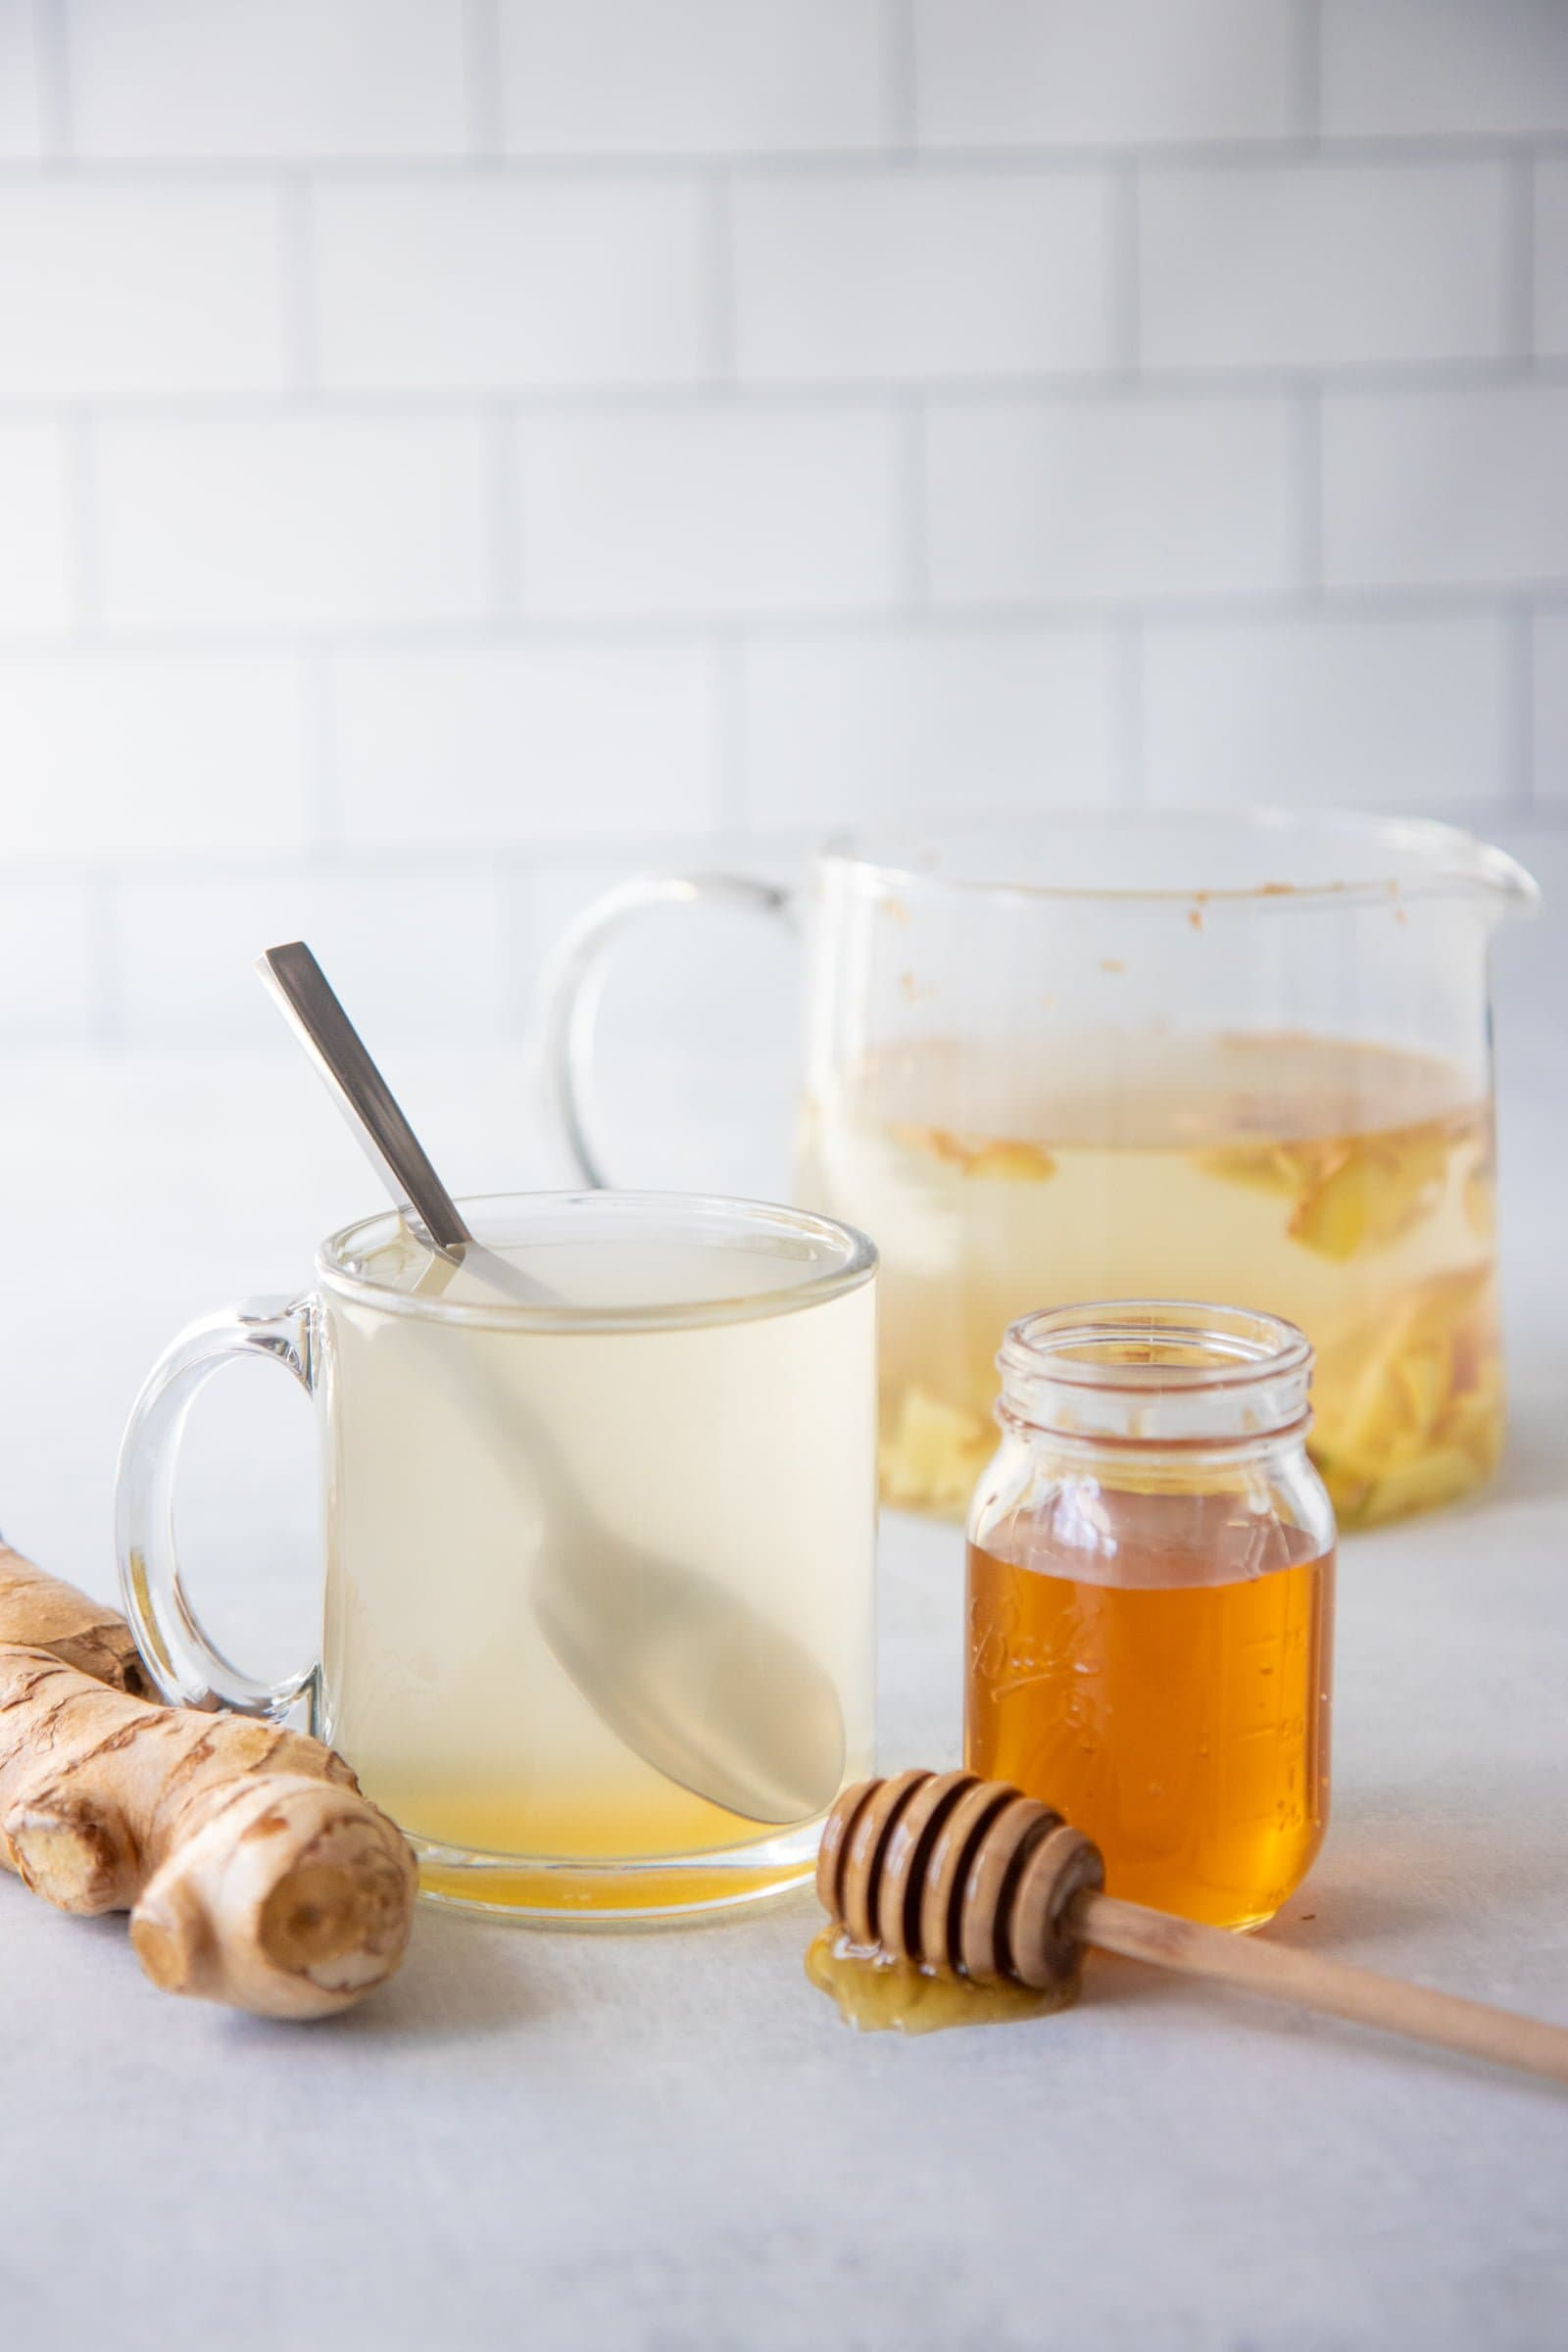 Clear glass of ginger tea and a jar of honey in the forefront, with a teapot of ginger tea in the background